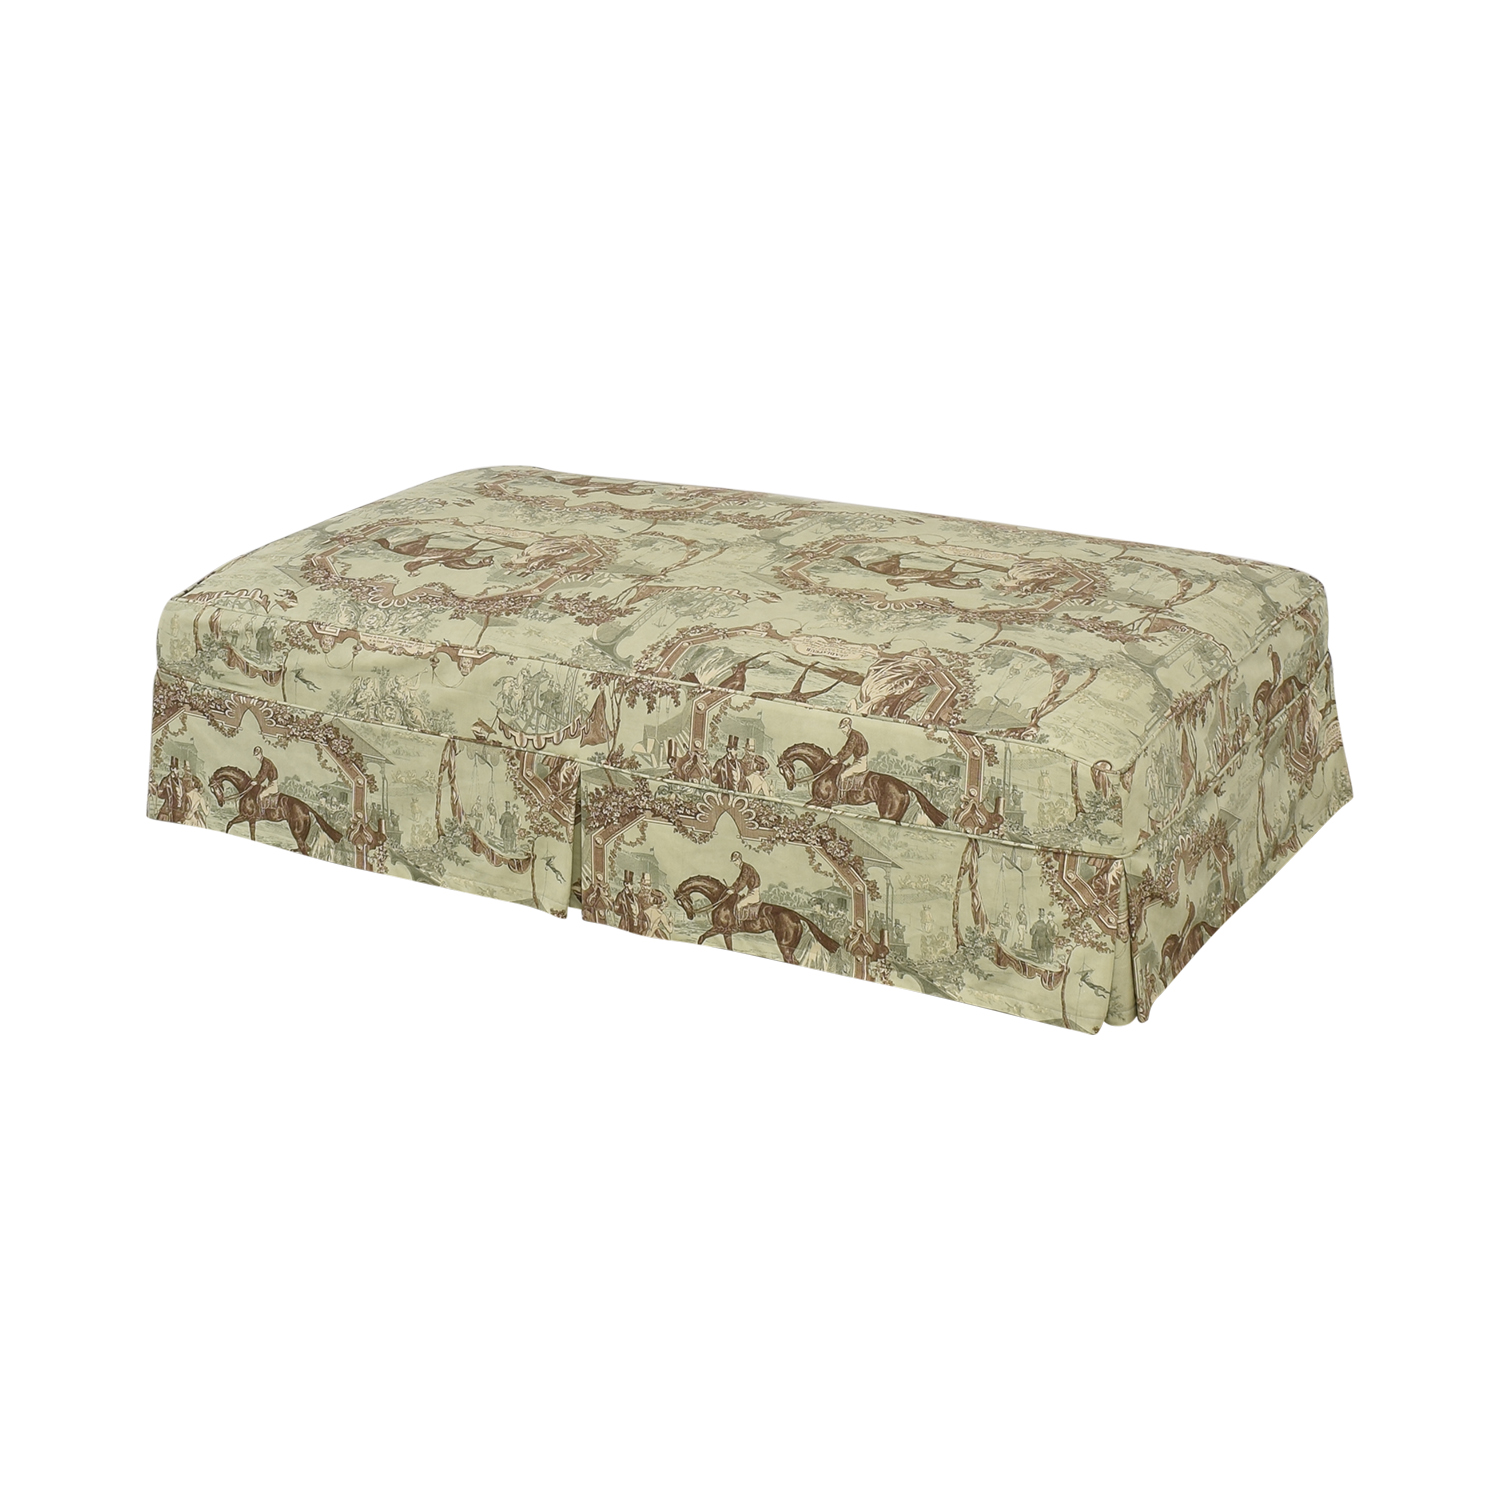 shop  Custom Slipcovered Ottoman online